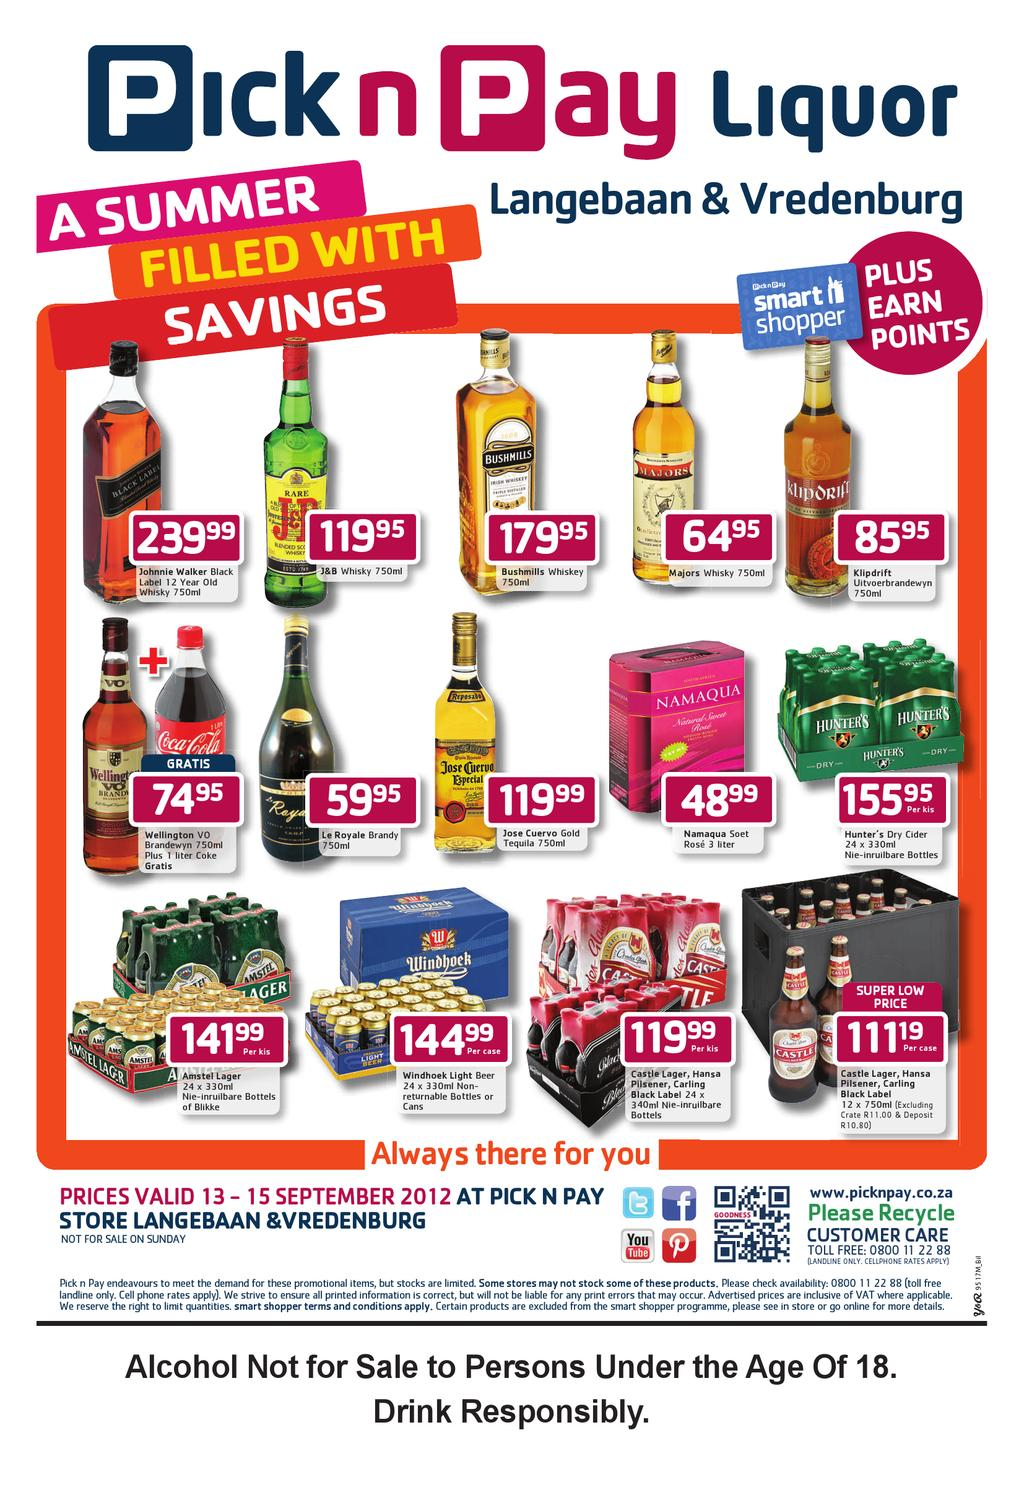 Pick n pay liquor specials today